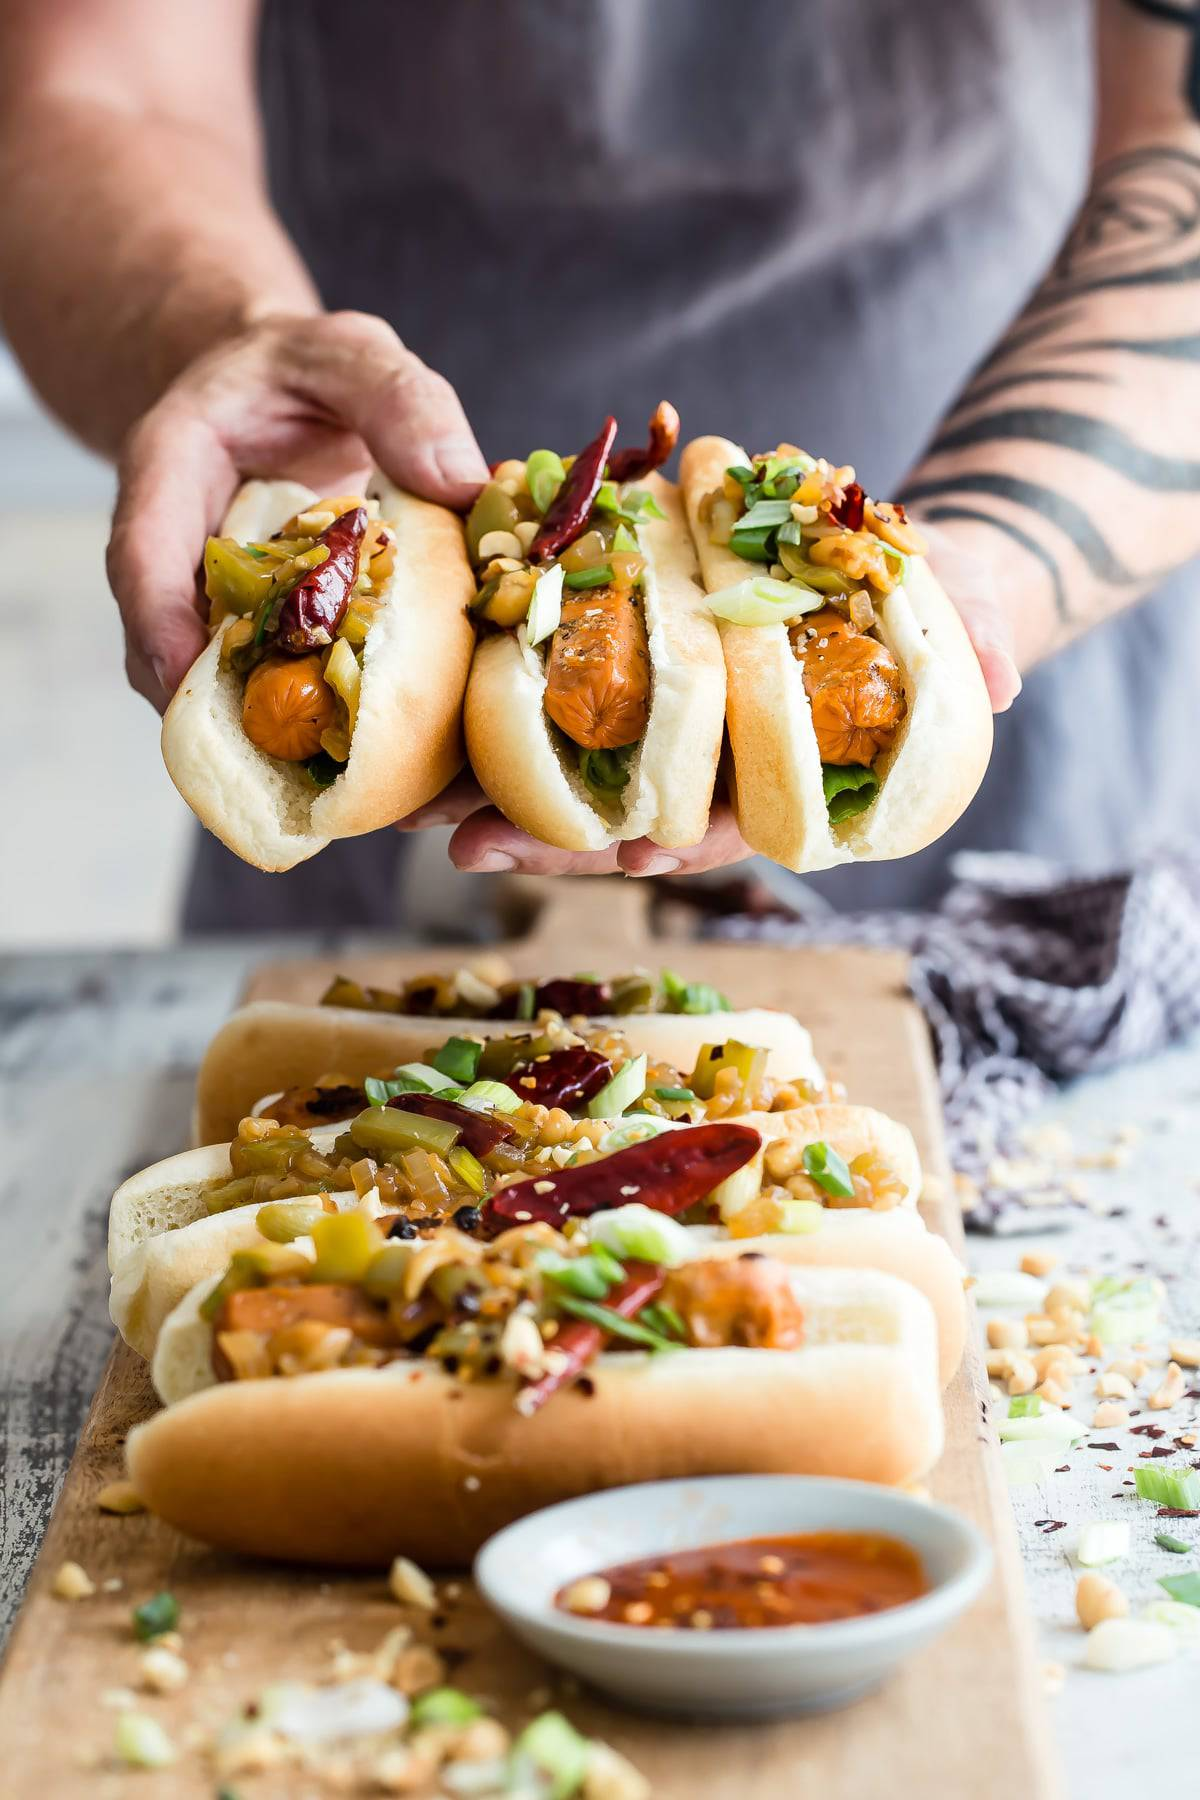 Yummy grilled veggie hotdogs topped with a slightly spicy kung pao mixture! These are so good and you'll love the topping! #veggie #hotdogs #vegetarian #grilling #spicy #foodnessgracious #lightlife